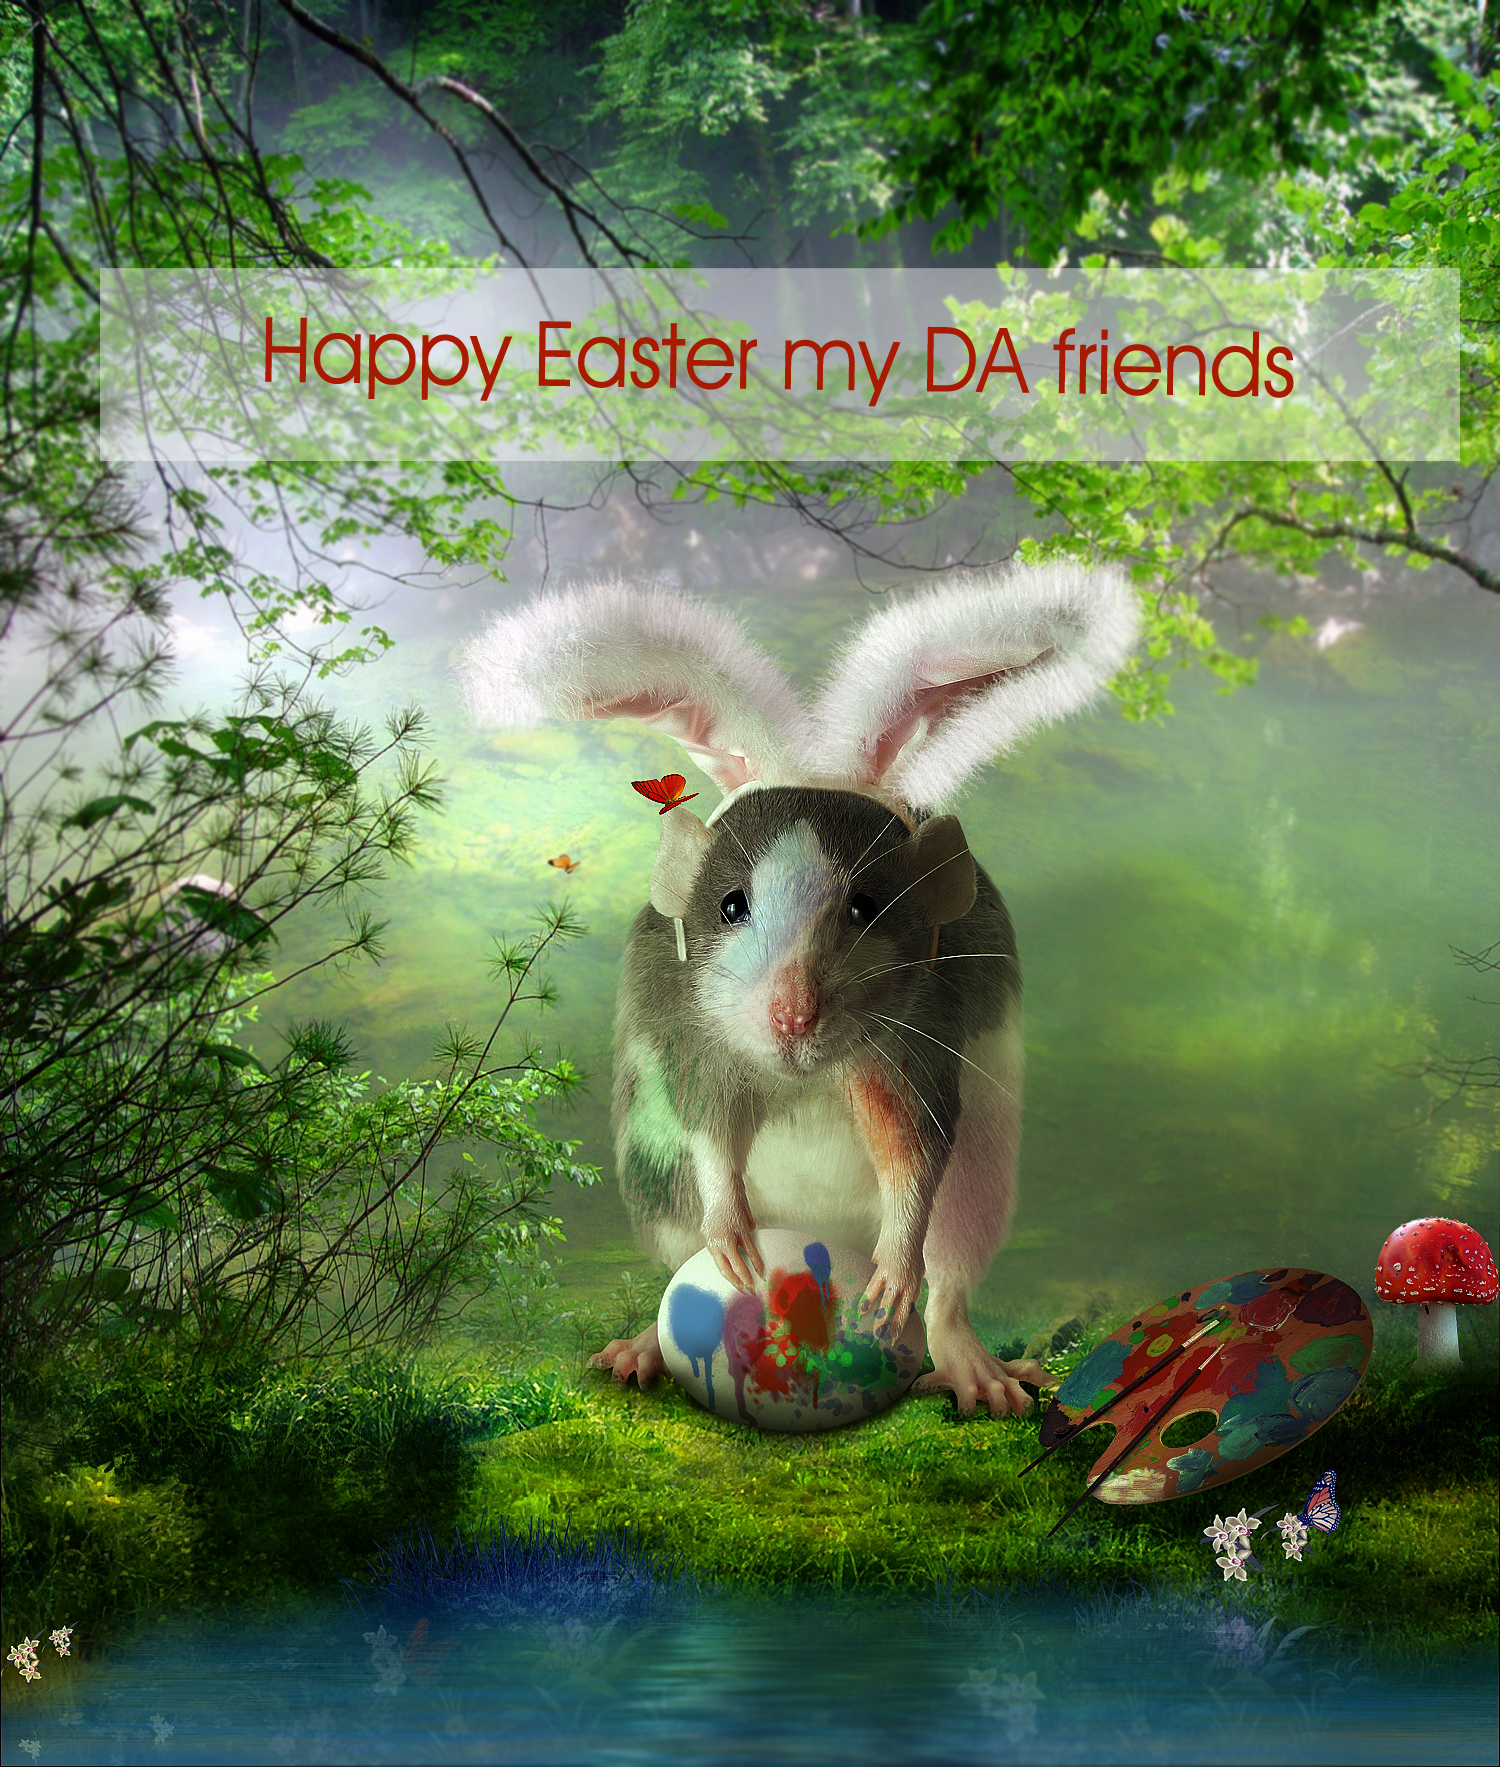 happy_easter_da_friends_by_jtotheotothee-d3eknej